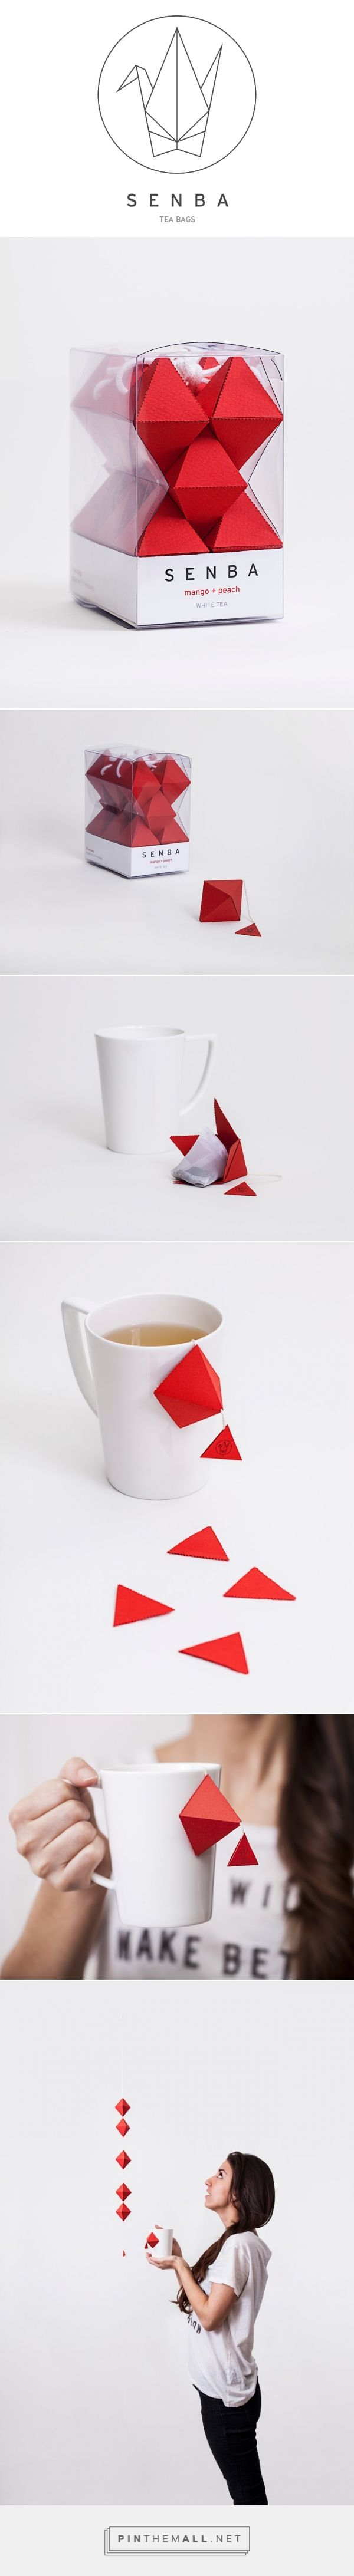 ‪‎Packaging‬ ‪‎Design‬ Project you shouldn't miss - Senba ‪‎Tea‬ ‪Concept‬ by Seita Goto - http://www.packagingoftheworld.com/2014/10/senba-tea-concept.html